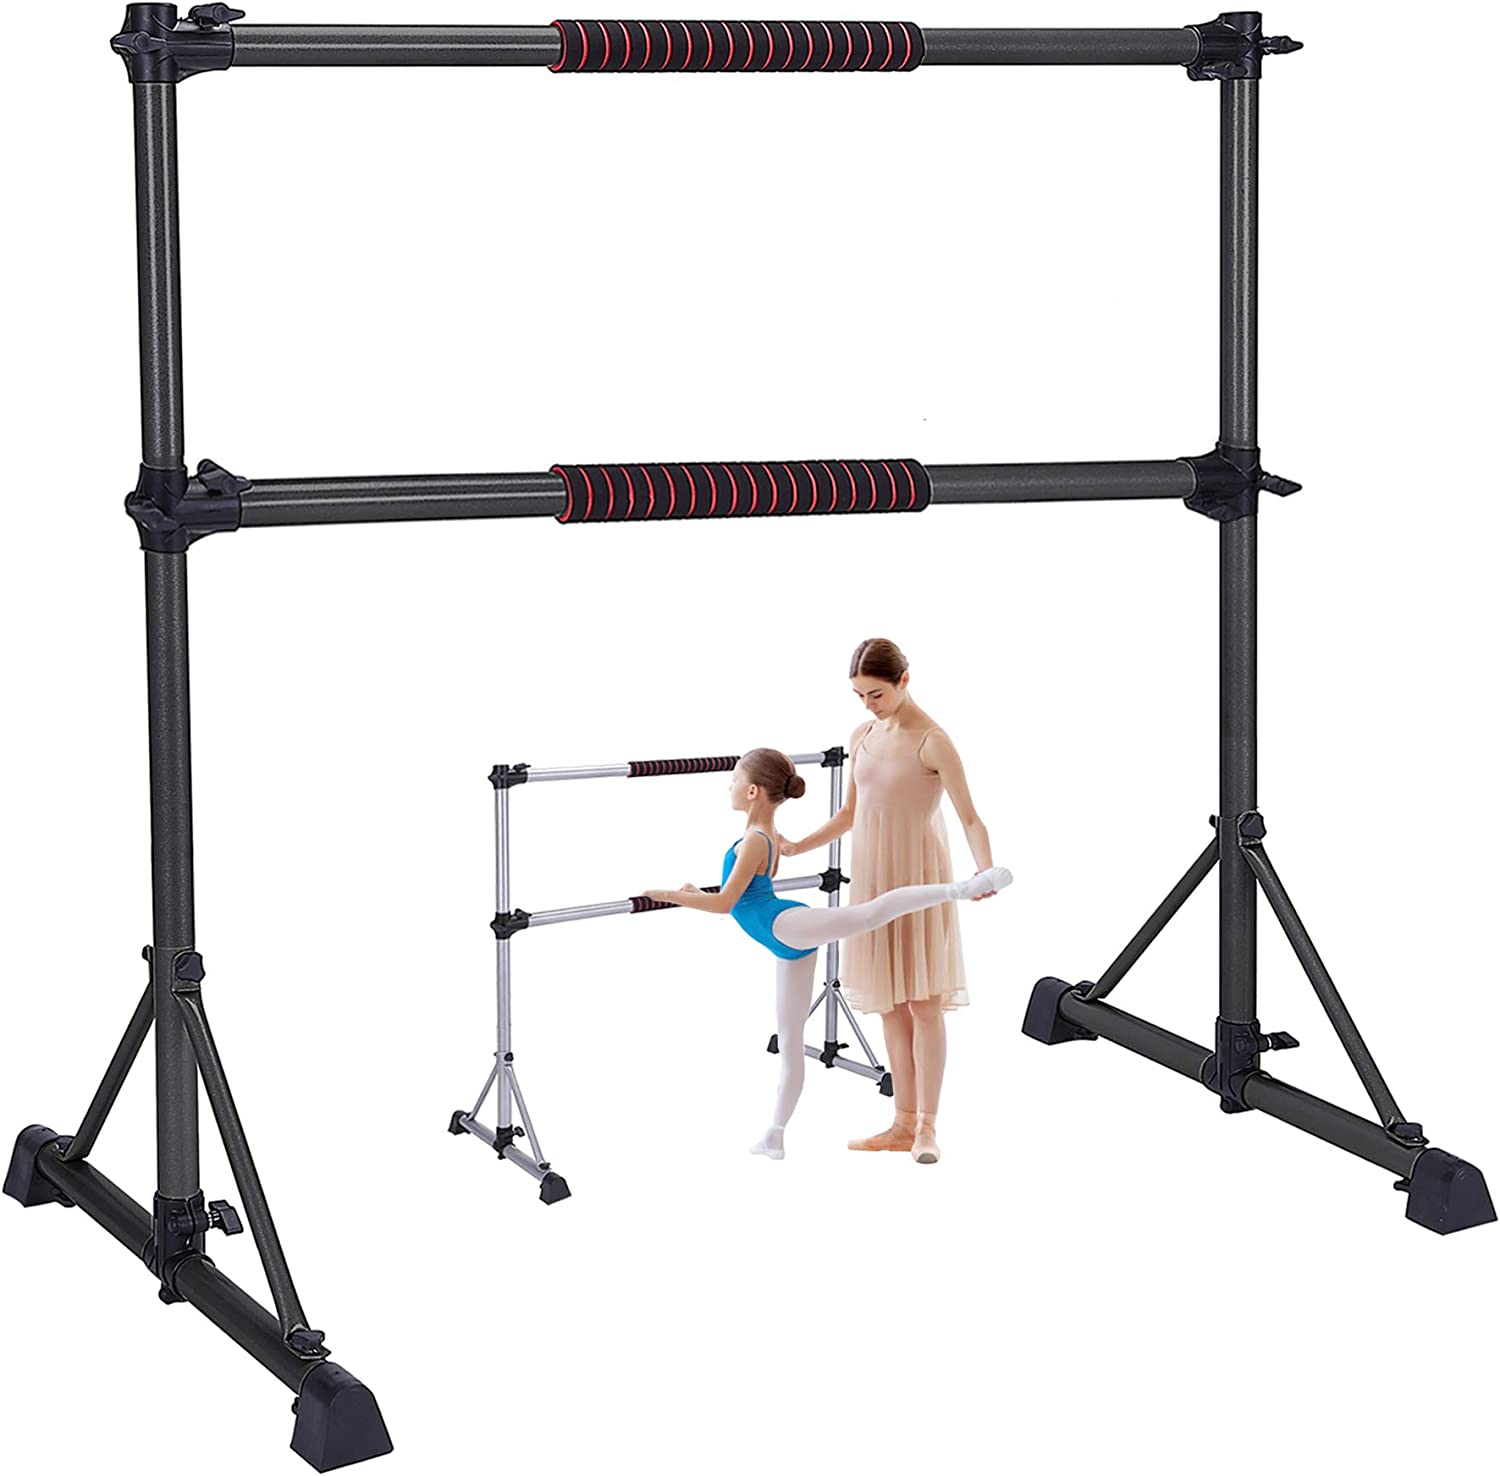 Excess Essentials 4ft Adjustable Portable Freestanding Ballet Barre - for Home Gym, Fitness with Carry Bag, Kids Dance, Gymnastics Tool, Adults Booty Workout Pole, Heavy-Duty, Double Stretching Bars